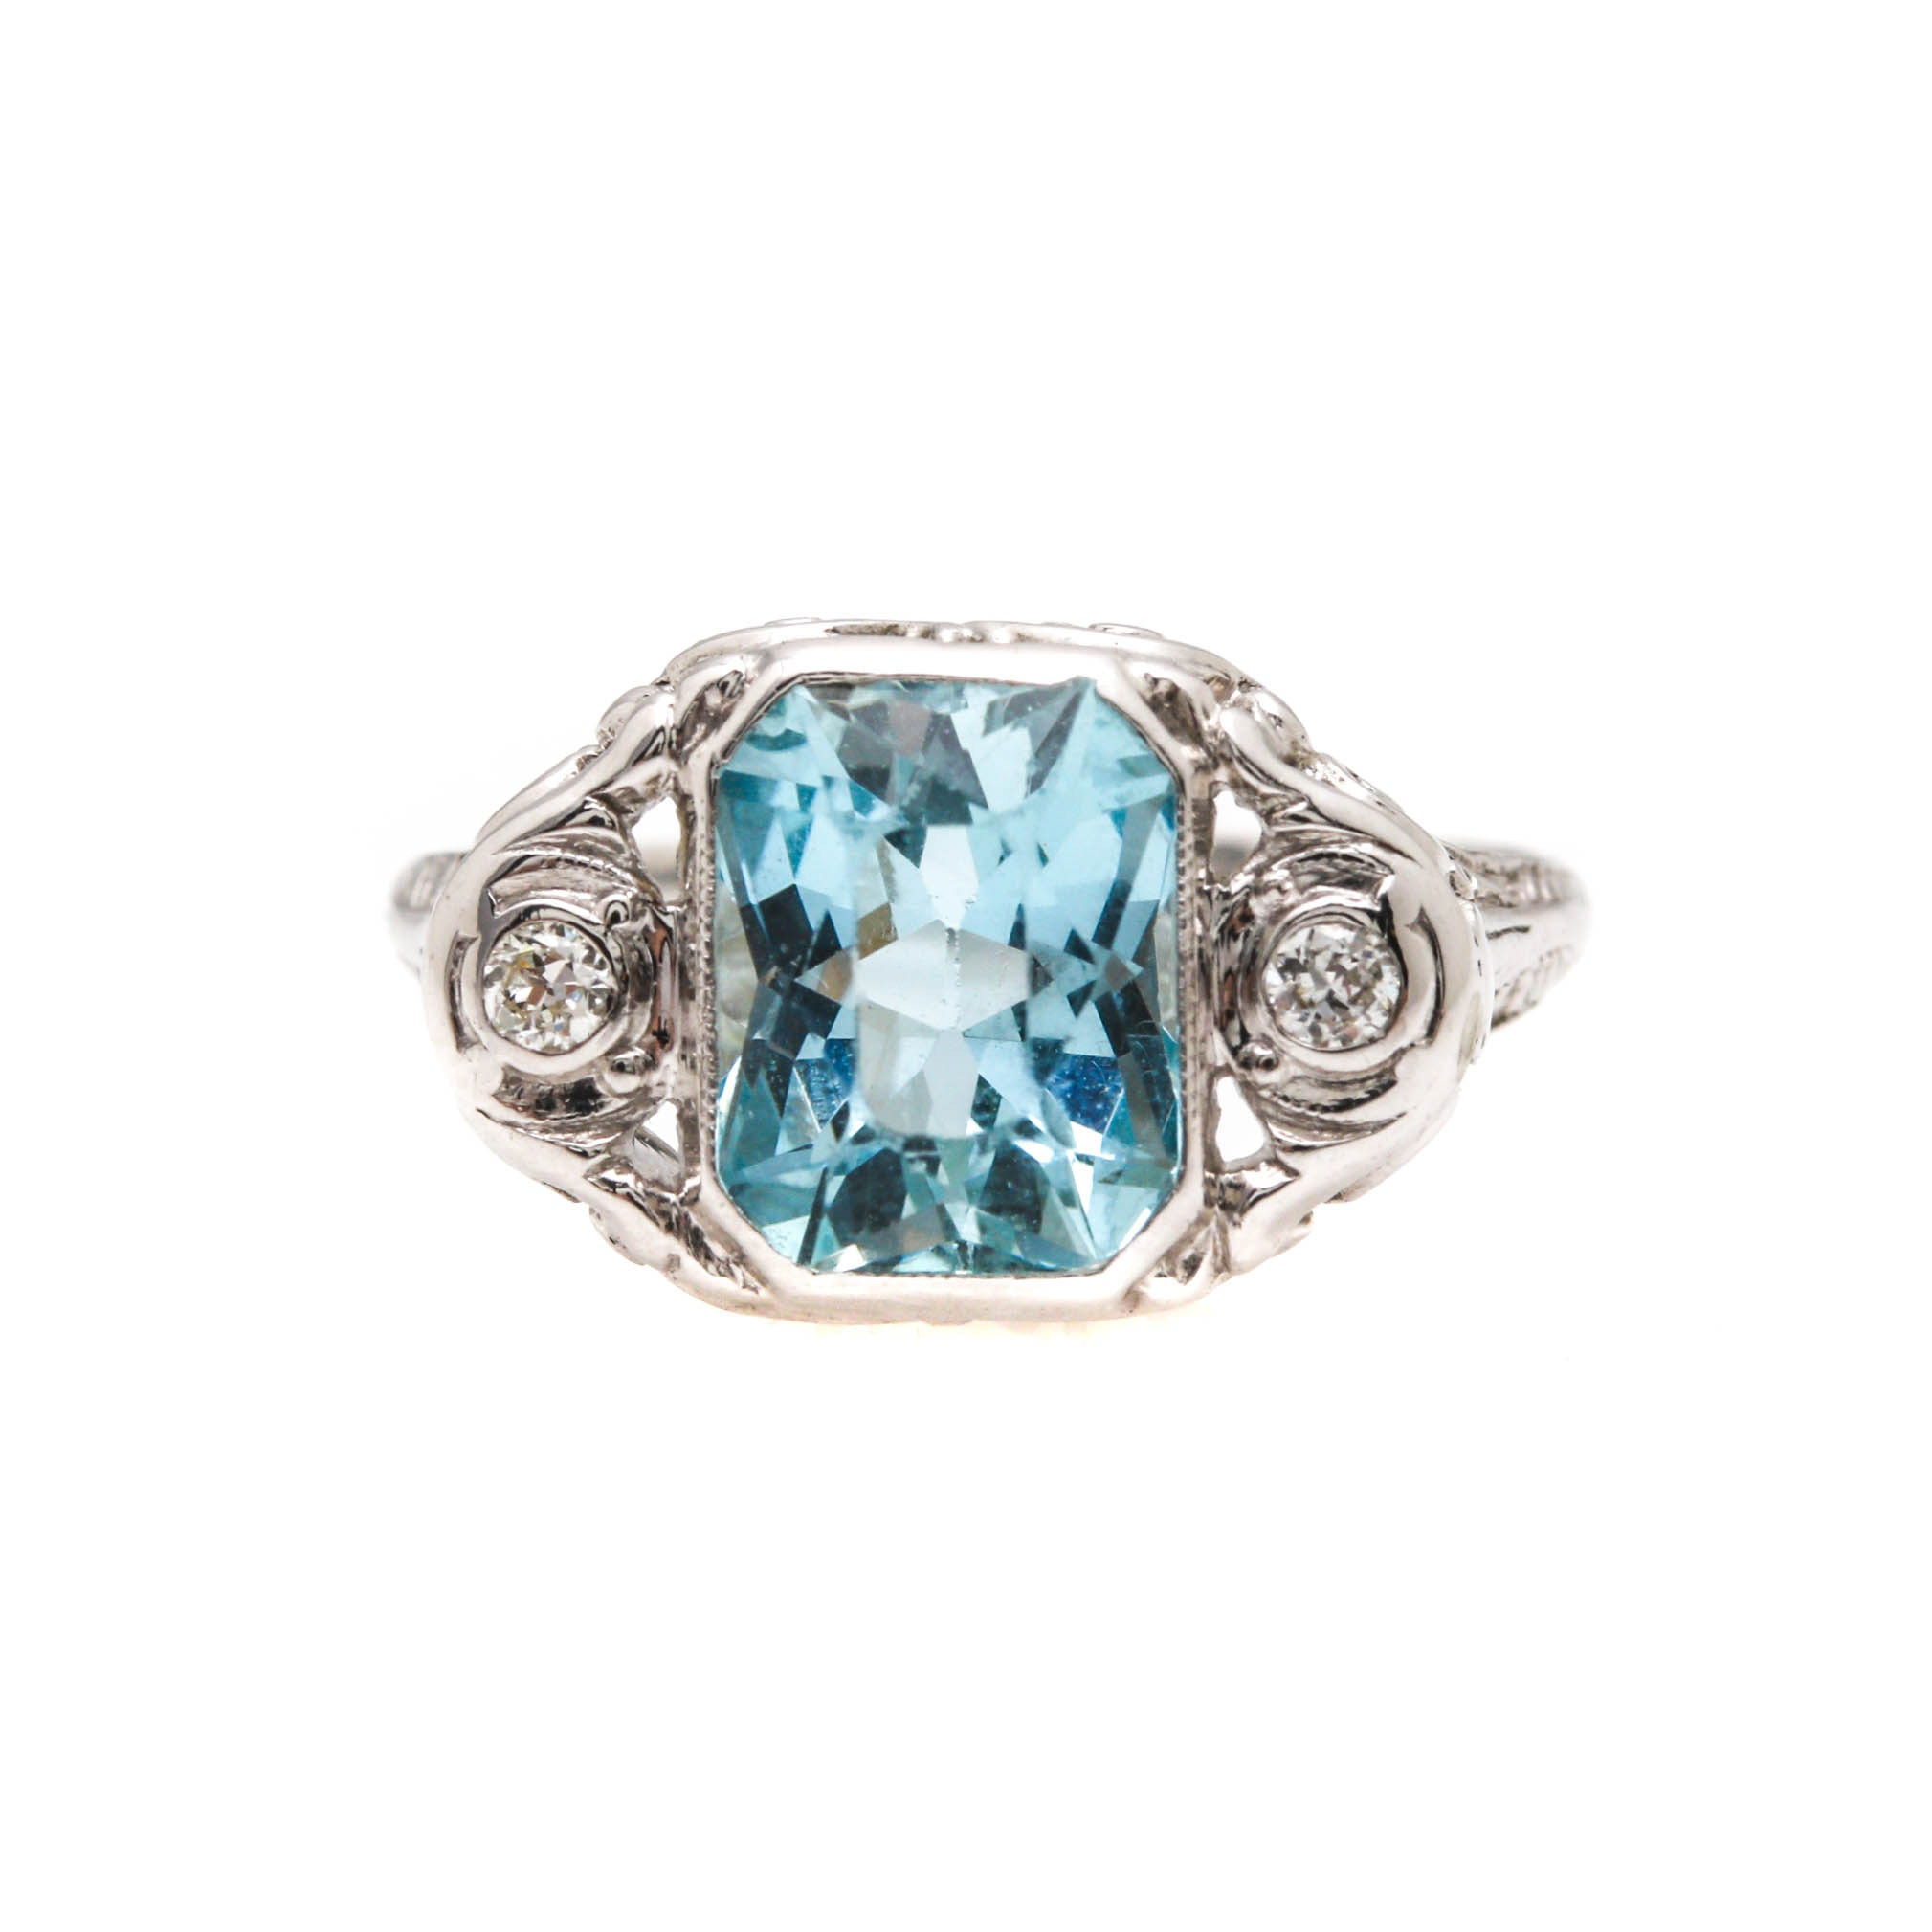 14K and 18K White Gold Aquamarine and Diamond Ring